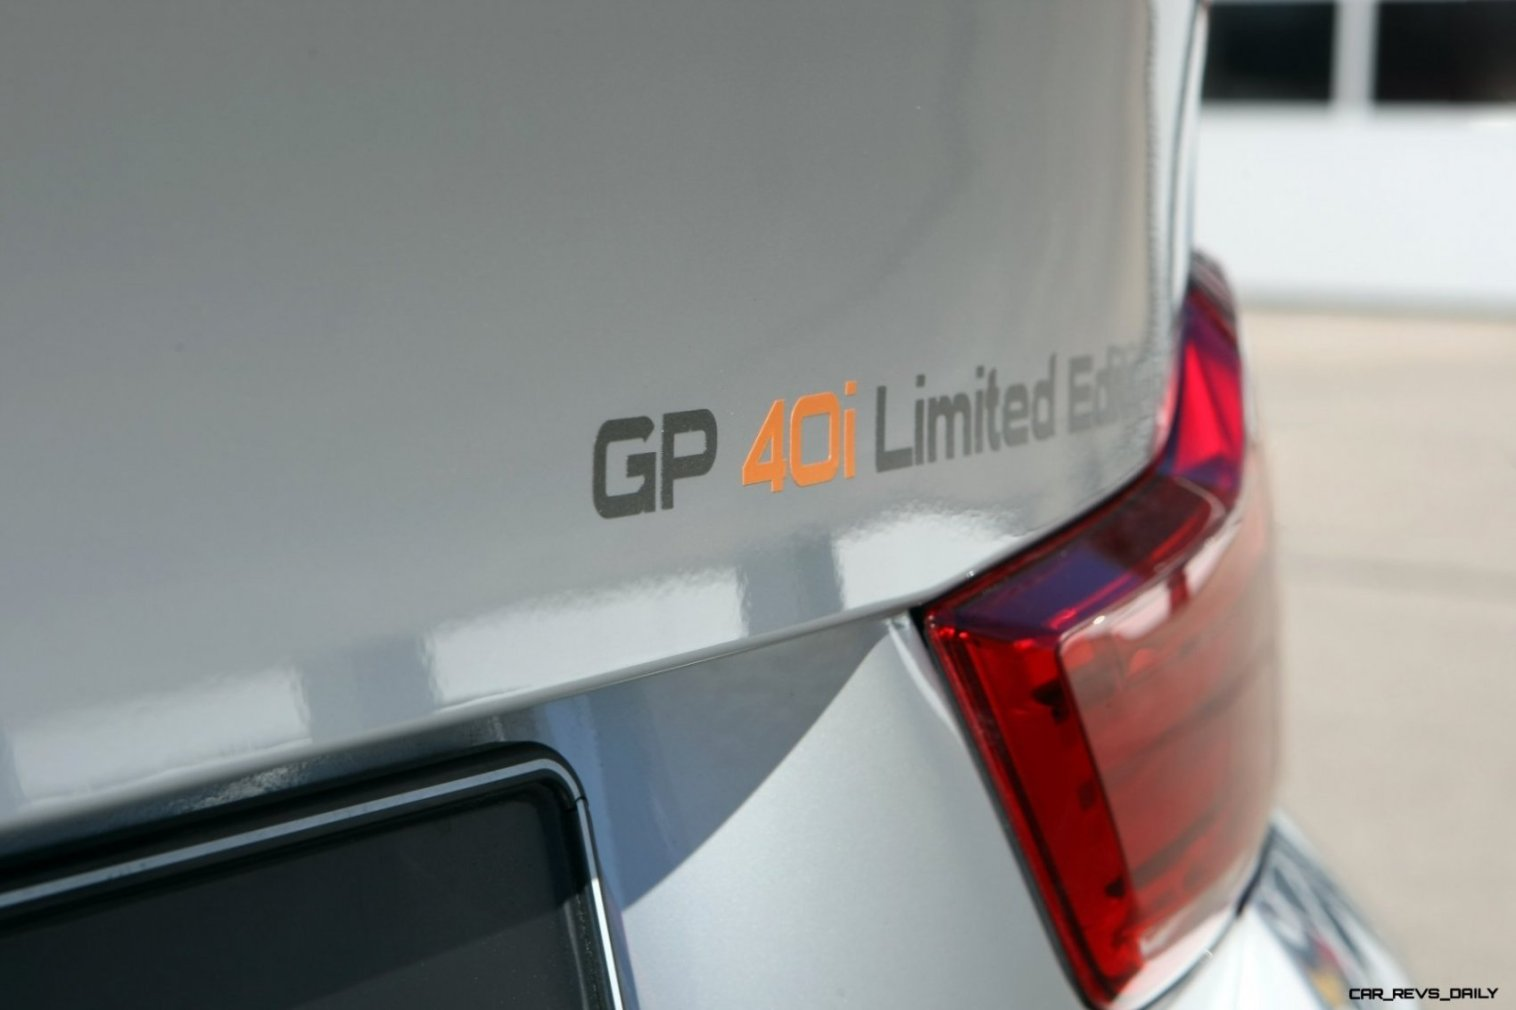 G-POWER_440i_Gran _Coupe_F36_GP_40i_Limited_Edition (12)